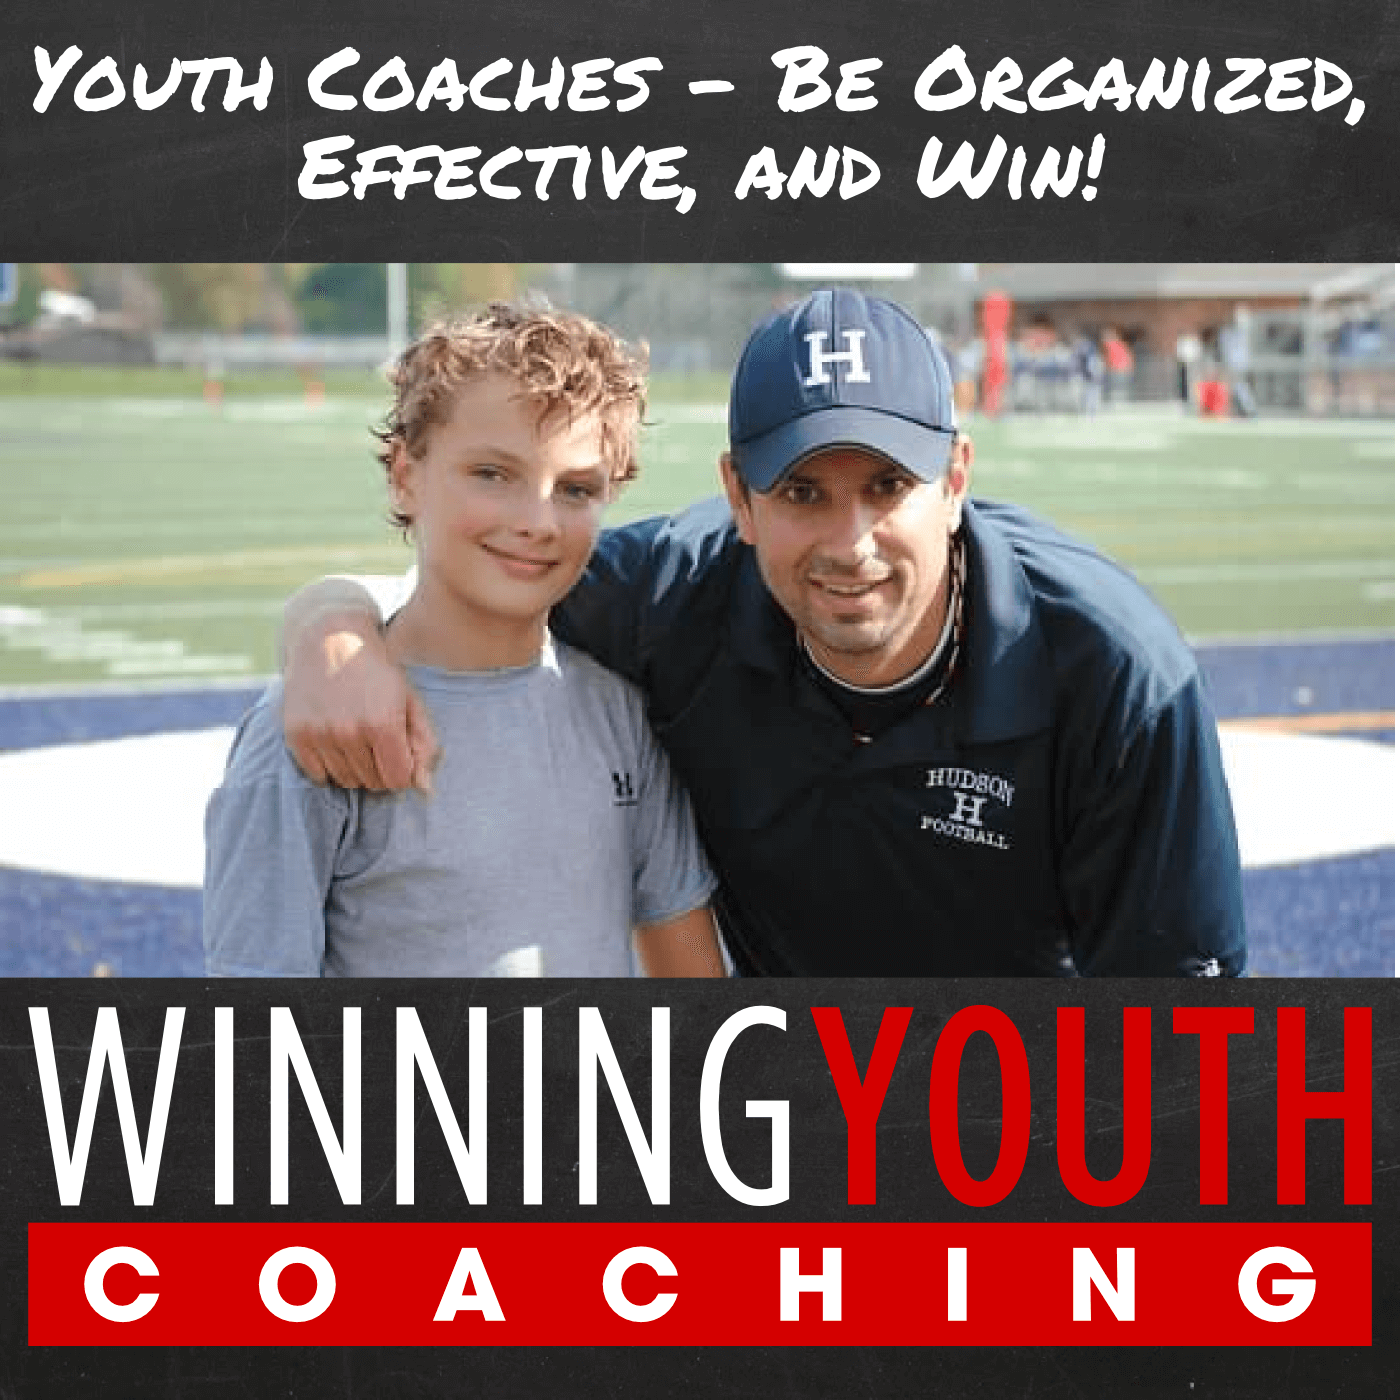 WYC 084 - Youth Basketball - Ryan Hohman - Starting your own youth sports program from scratch